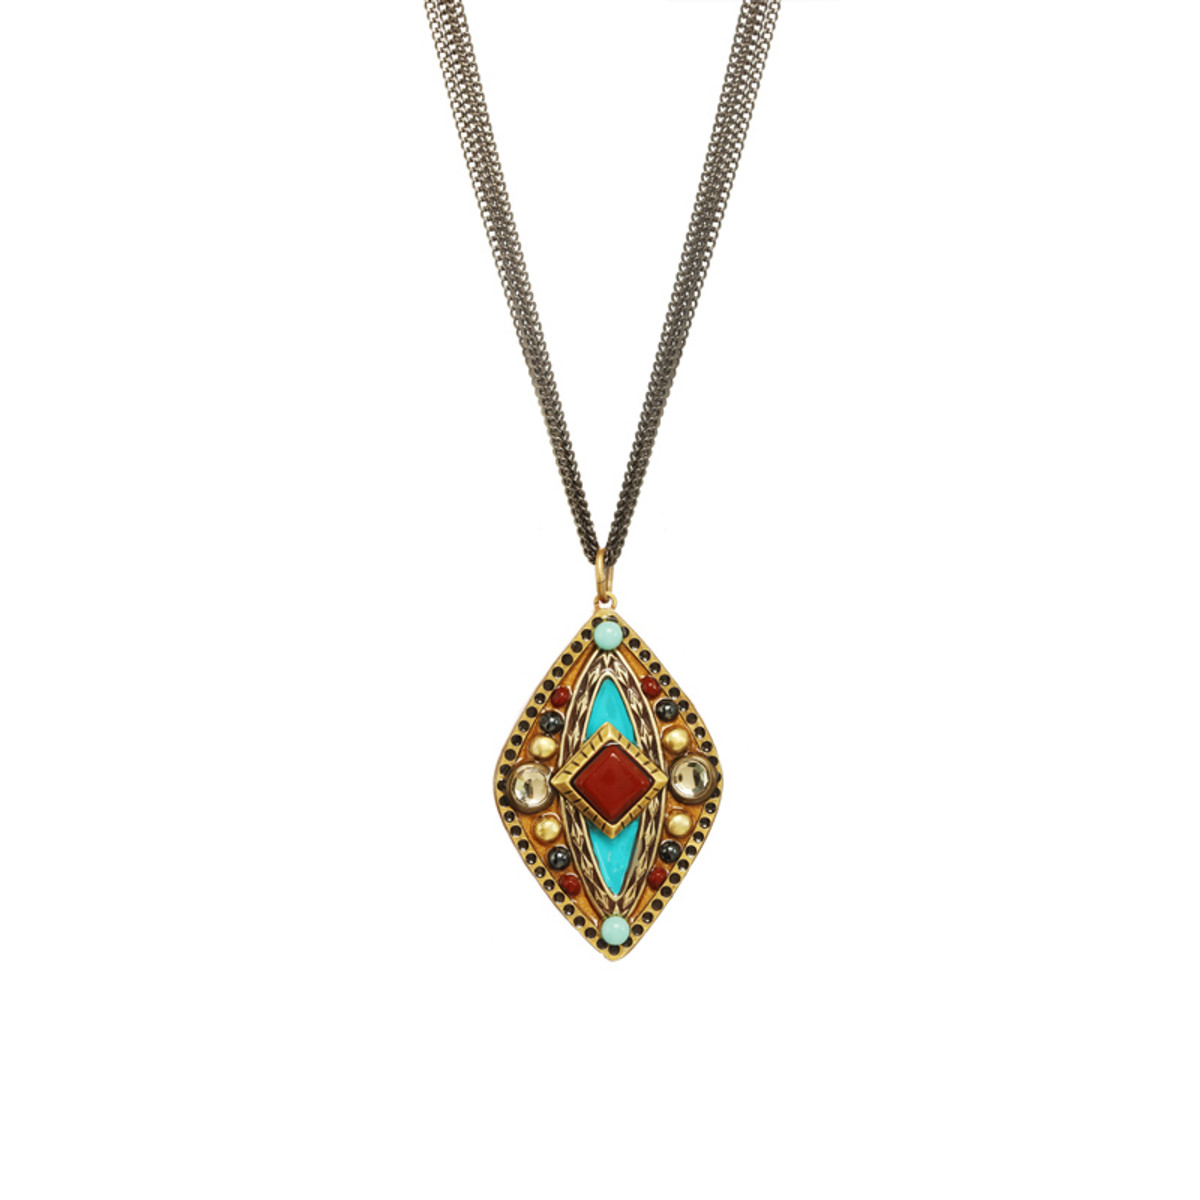 Gold Southwest style necklace by Michal Golan Jewelry